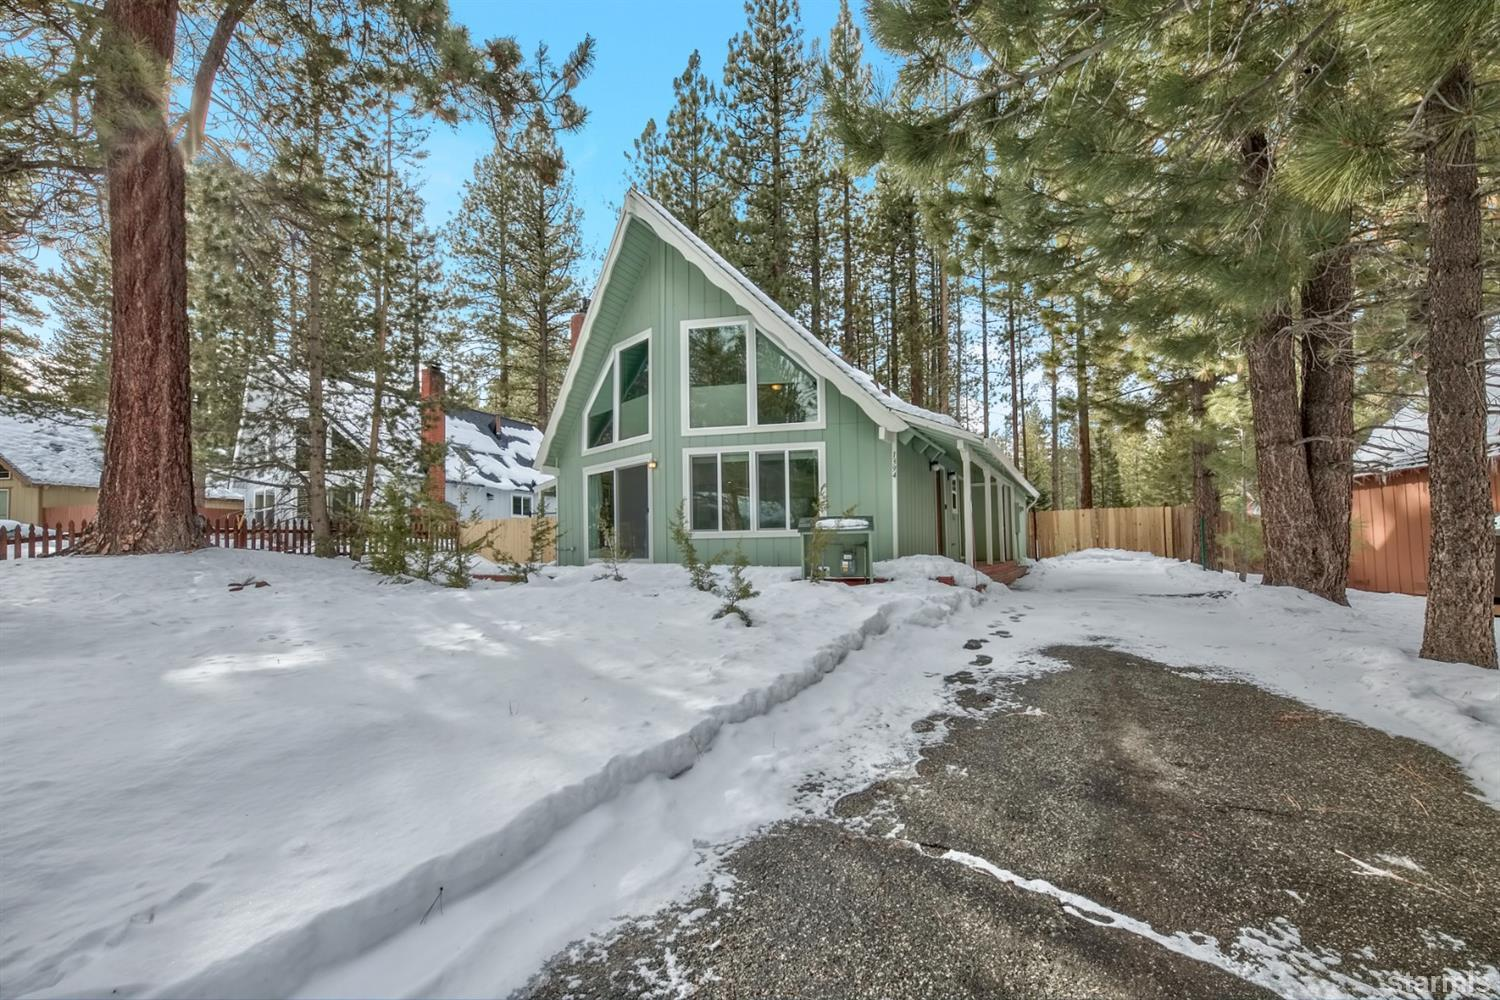 Image for 1394 Matheson Drive, South Lake Tahoe, CA 96150